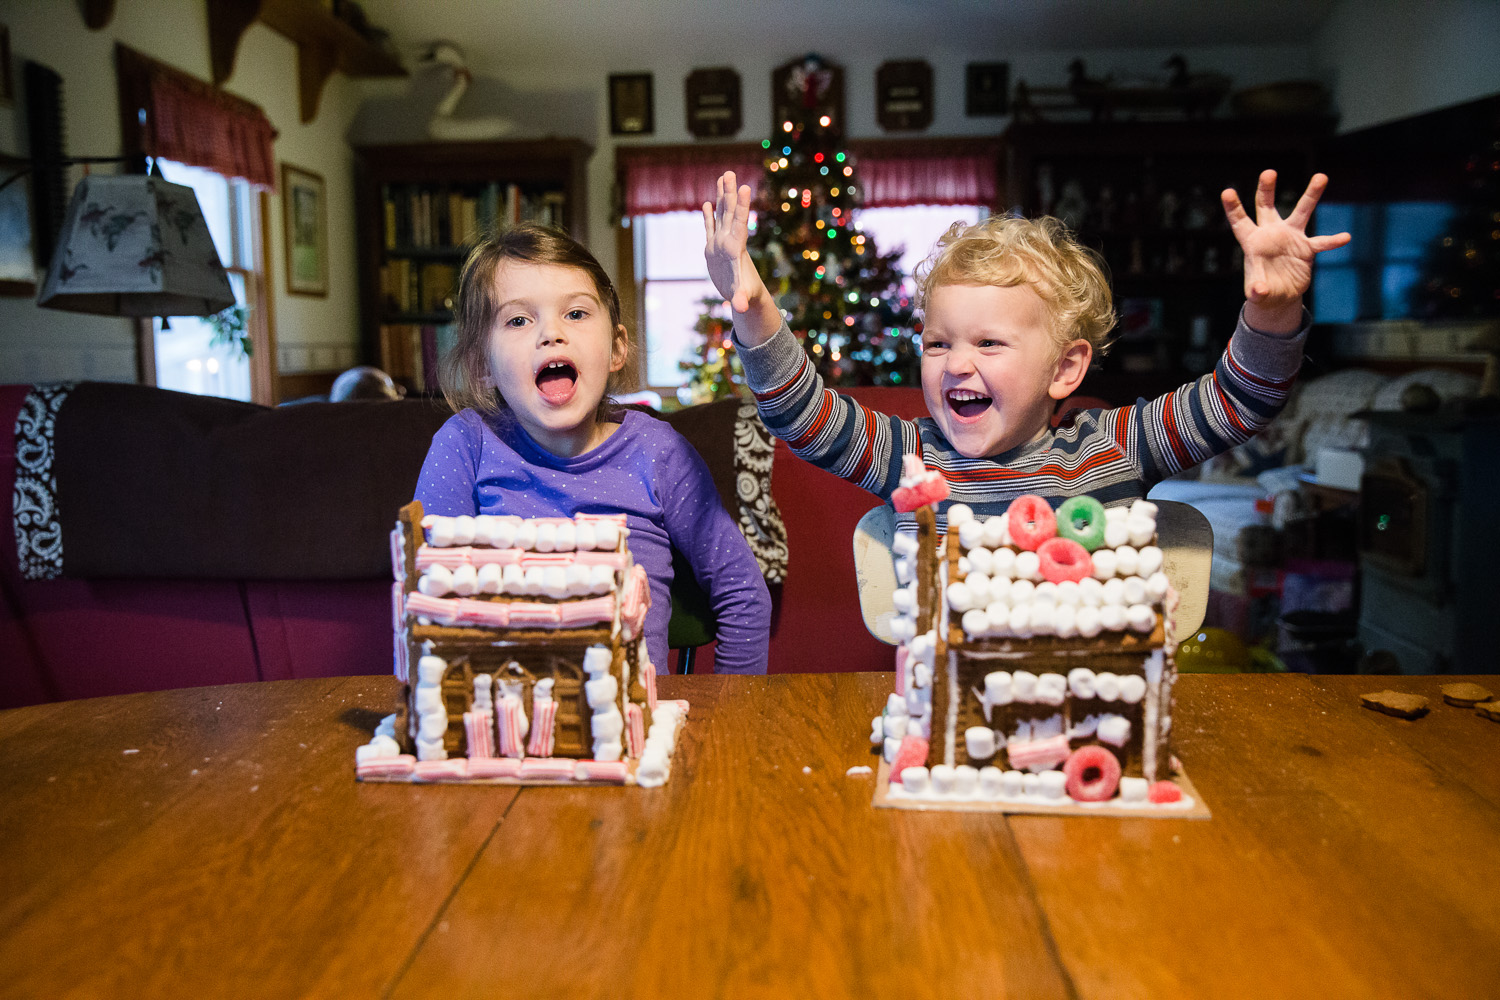 Grandchildren having fun during a holiday traditions photography session In Maryland